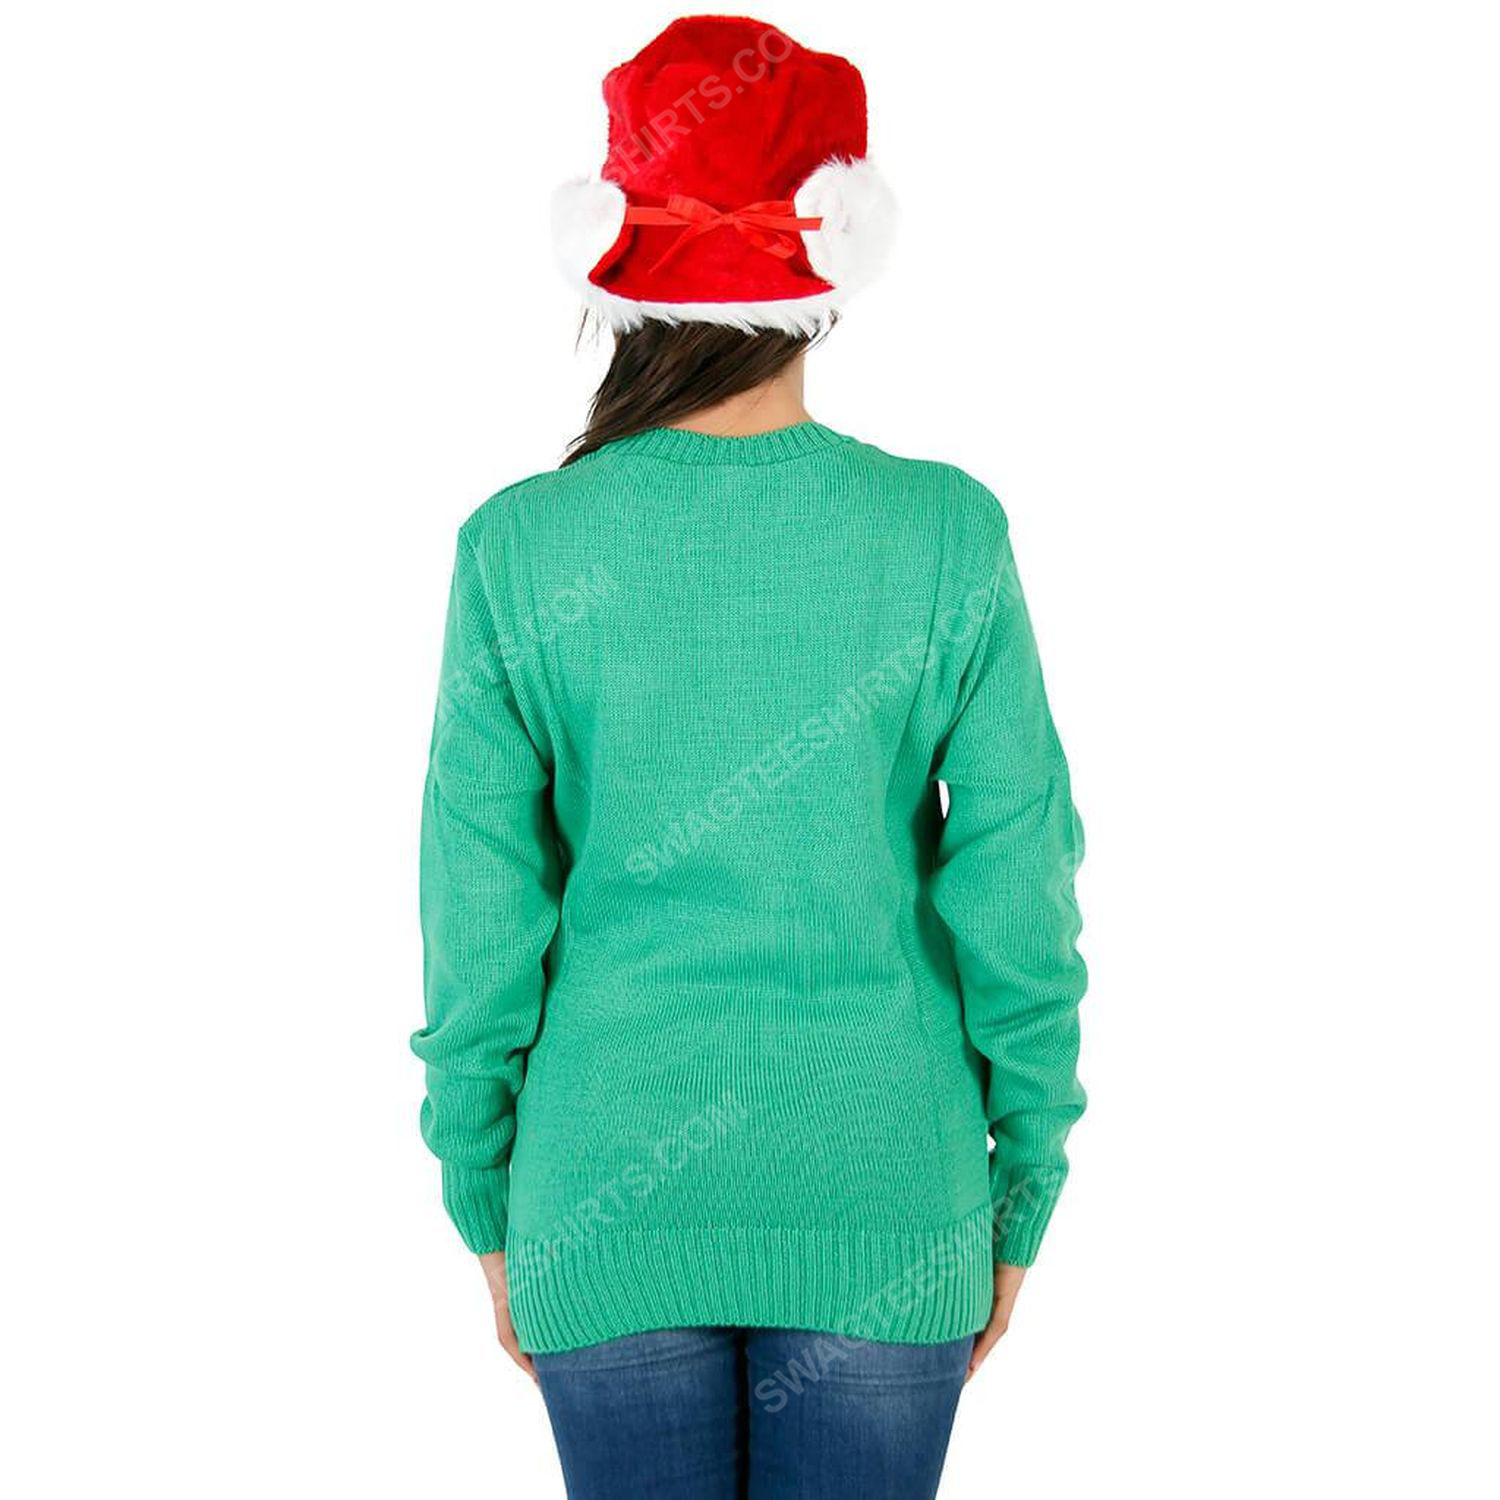 The grinch face full print ugly christmas sweater 3 - Copy